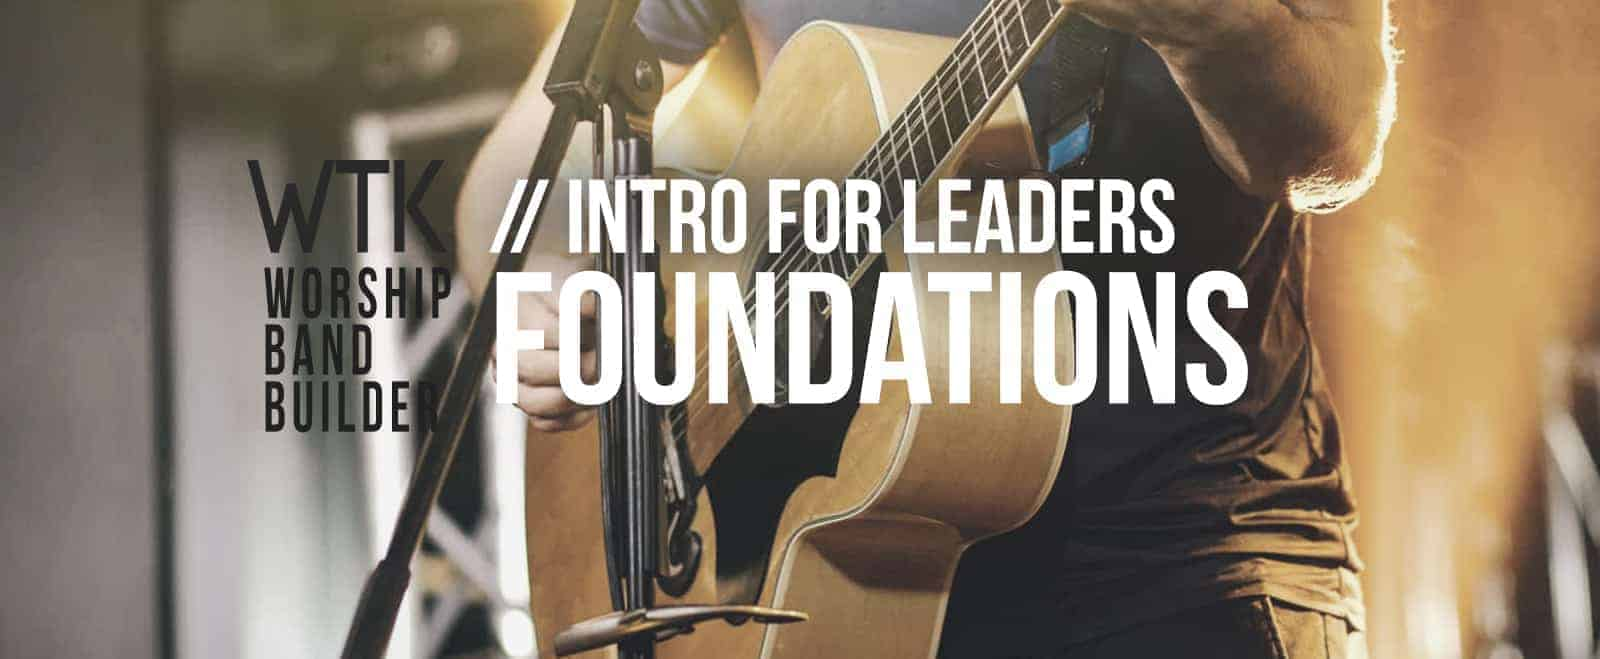 Band Builder Foundations – Intro For Church Leaders